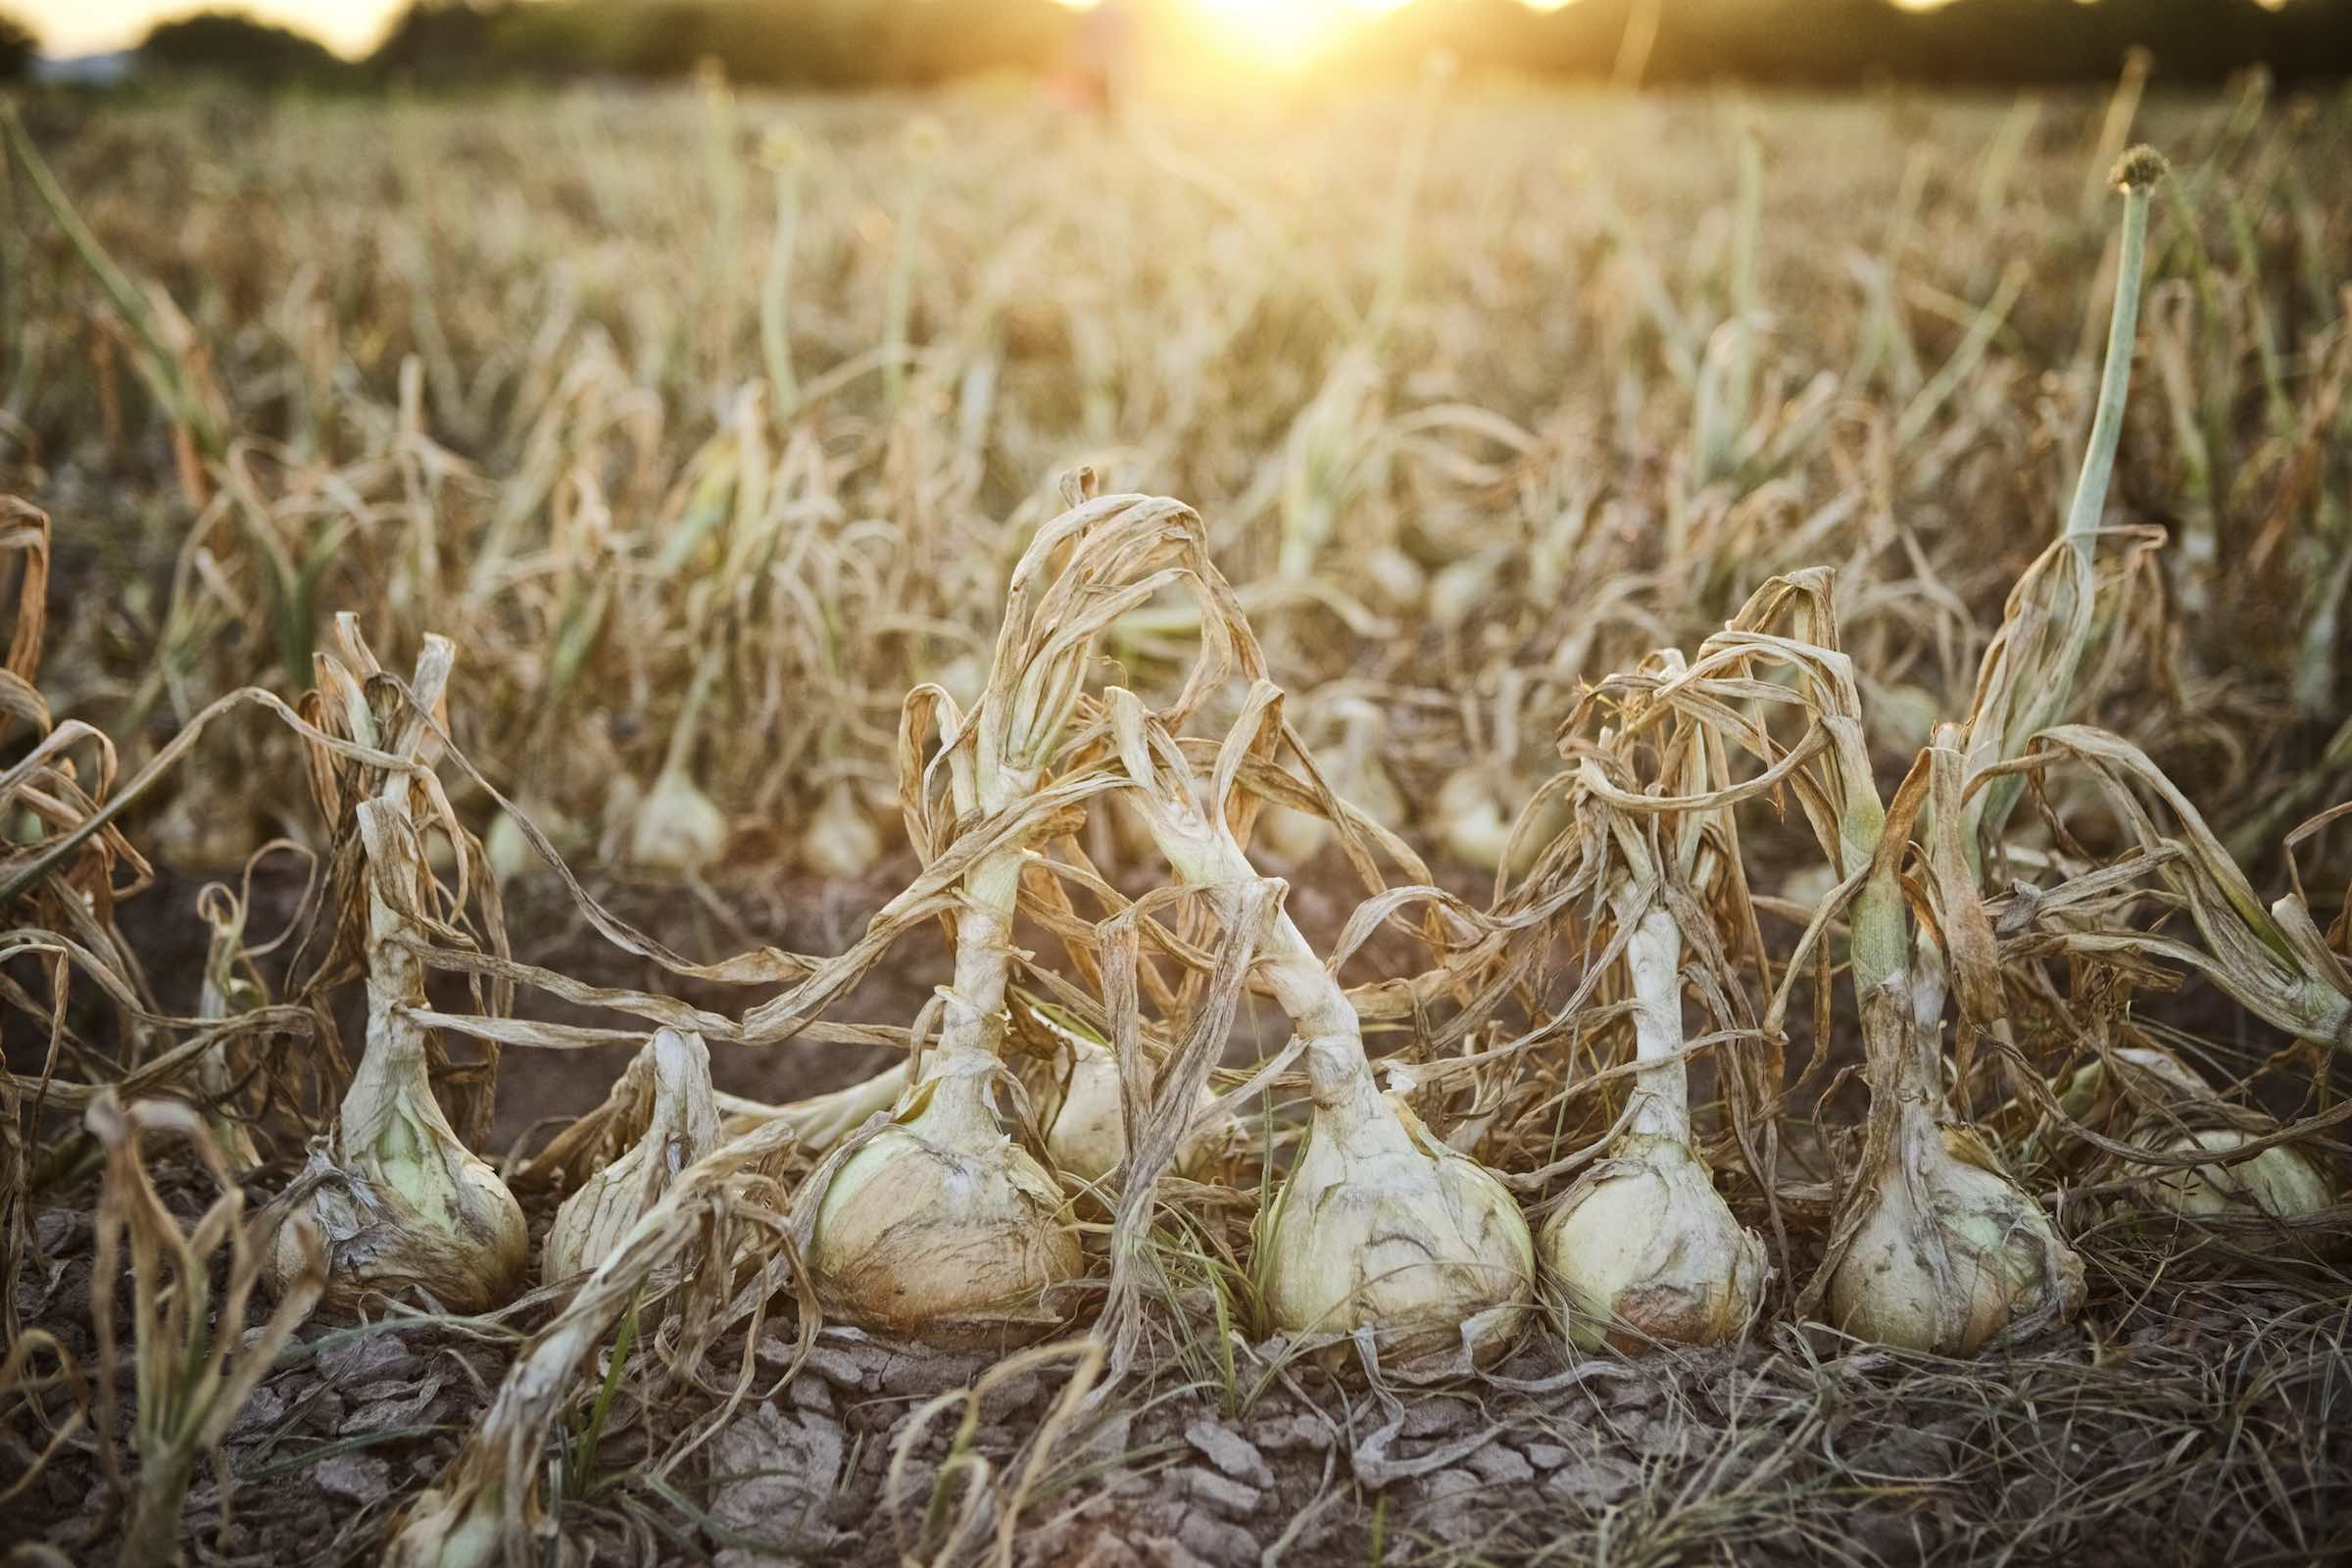 Jody Horton Photography - Onions growing in soil, ready to harvest.